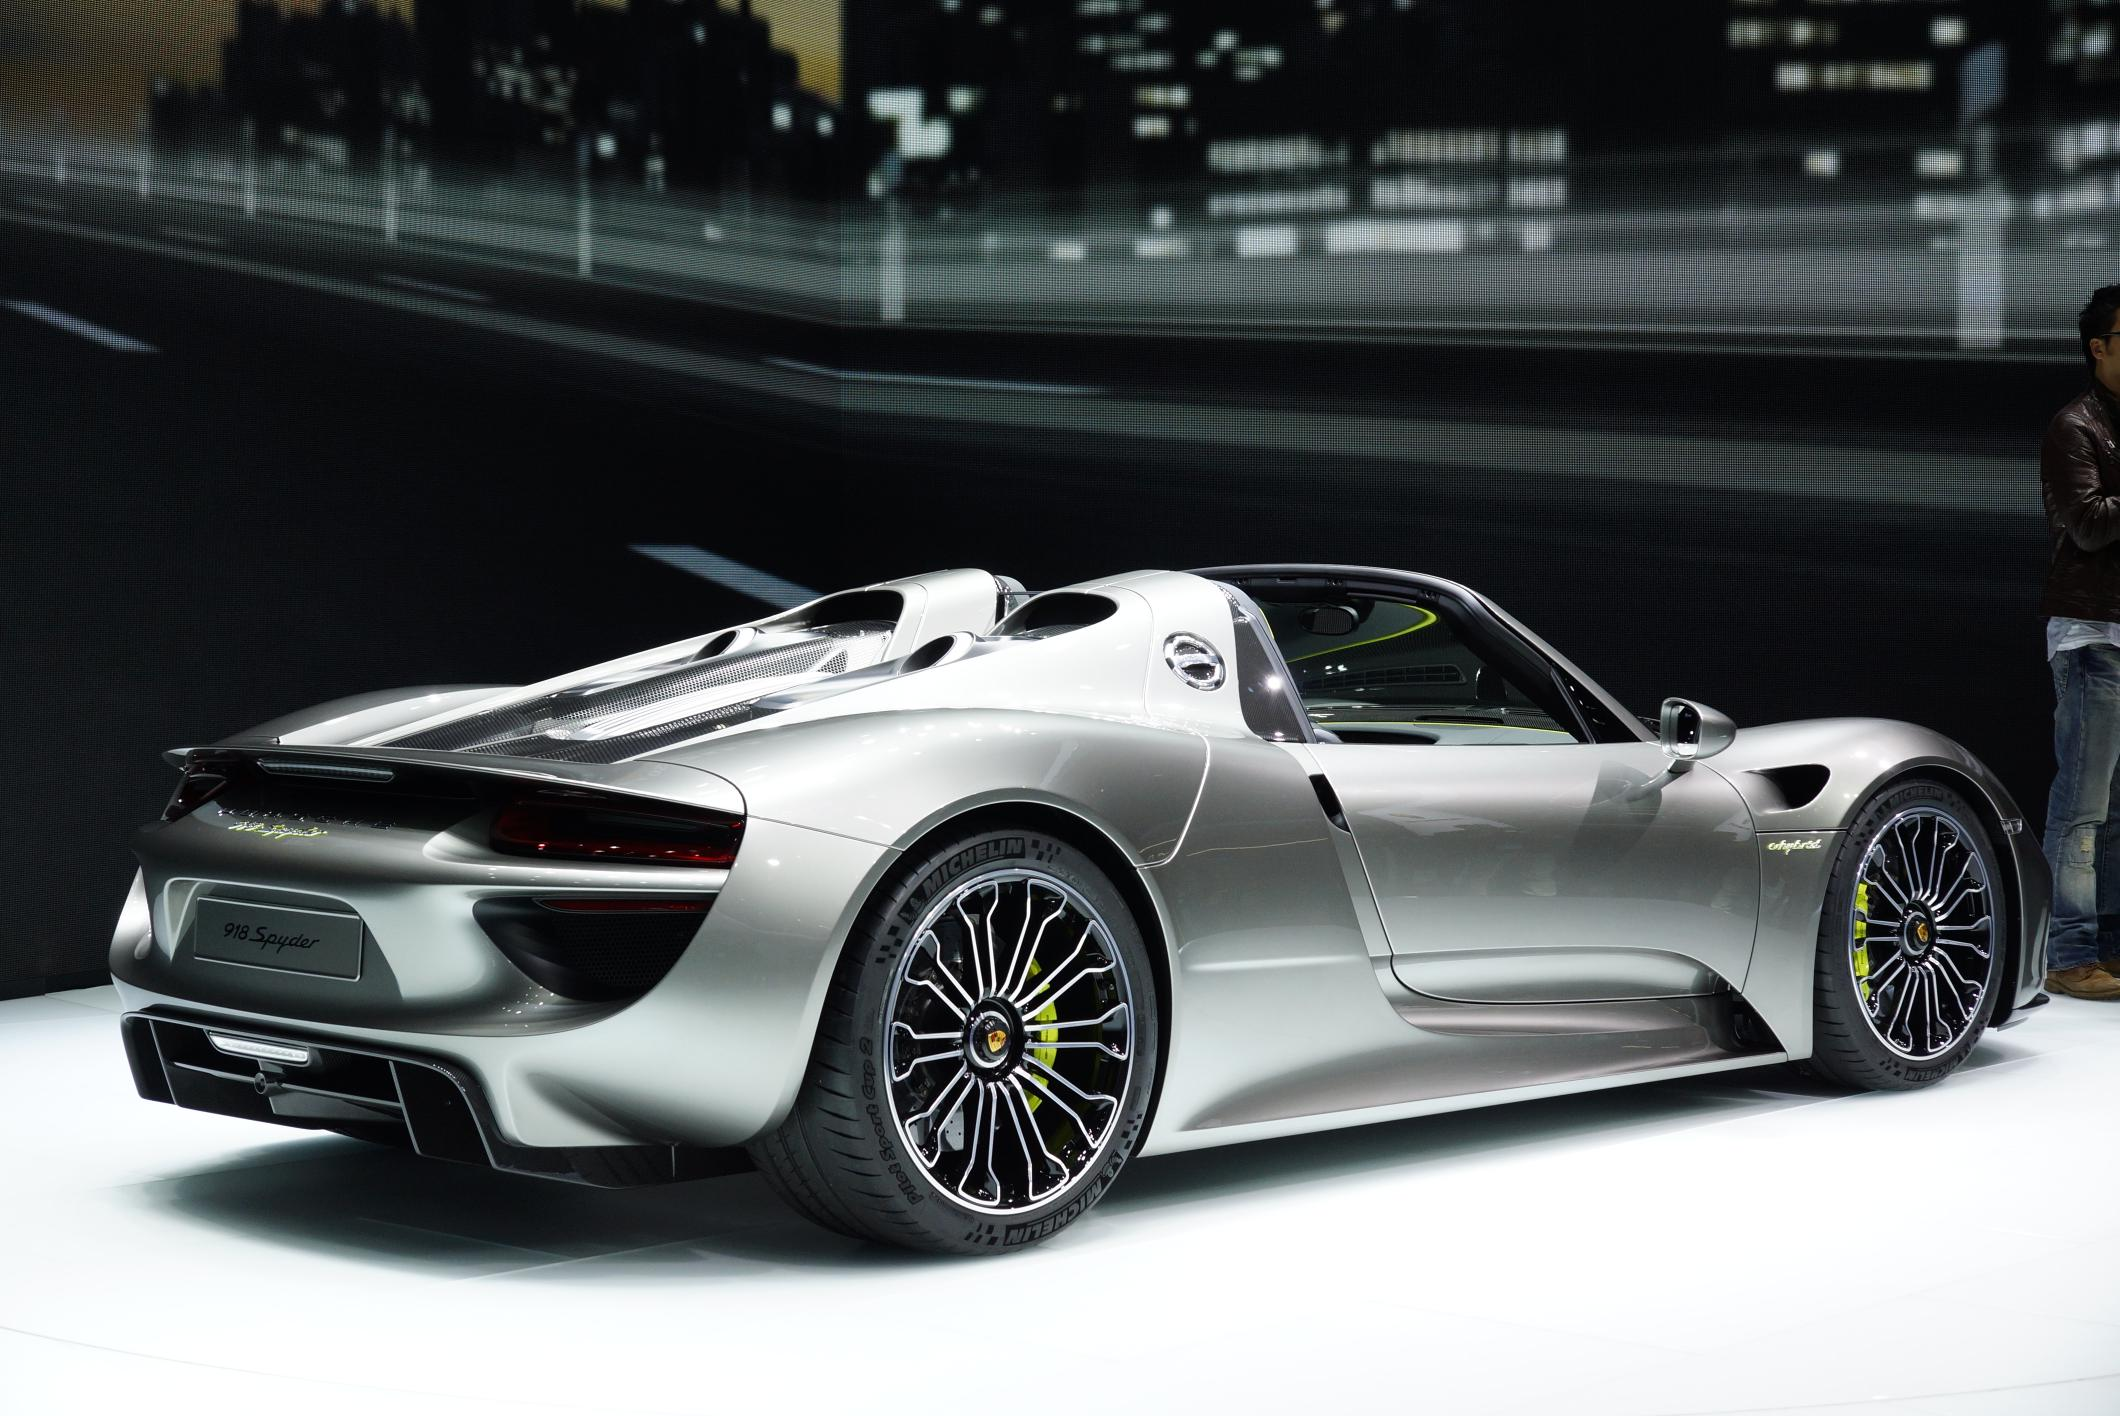 porsche 918 spyder rear 2013 frankfurt motor show. Black Bedroom Furniture Sets. Home Design Ideas